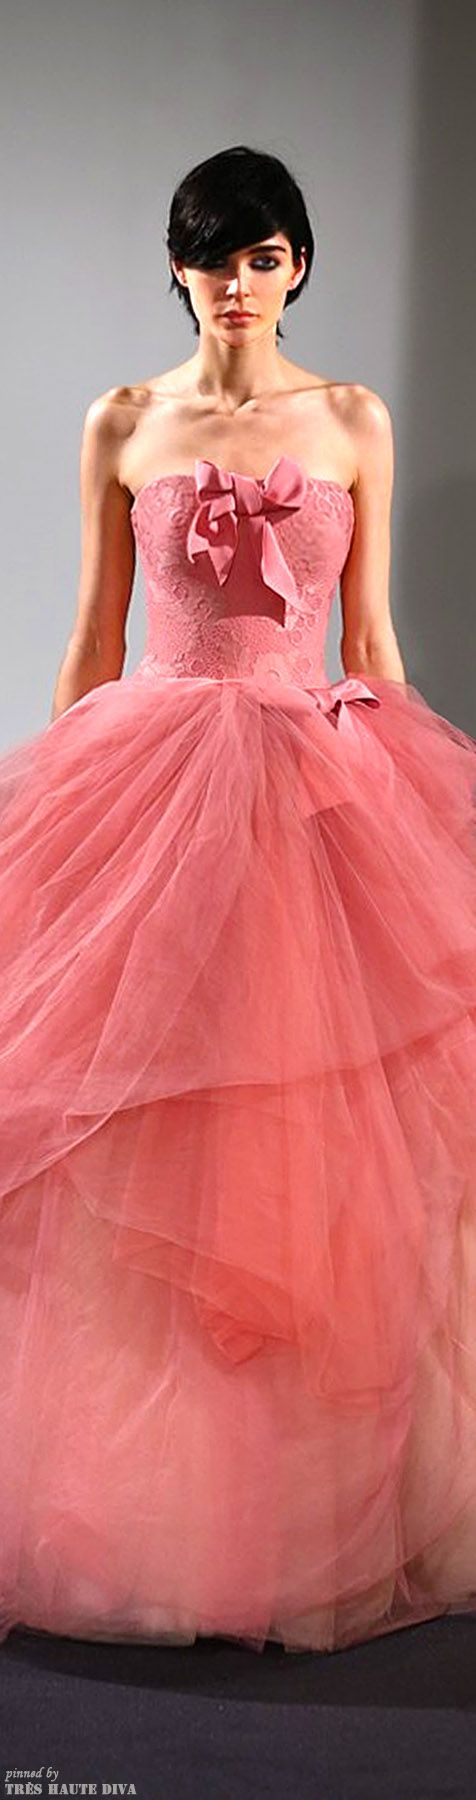 149 best Vera Wang images on Pinterest | Beautiful, Boyfriends and ...